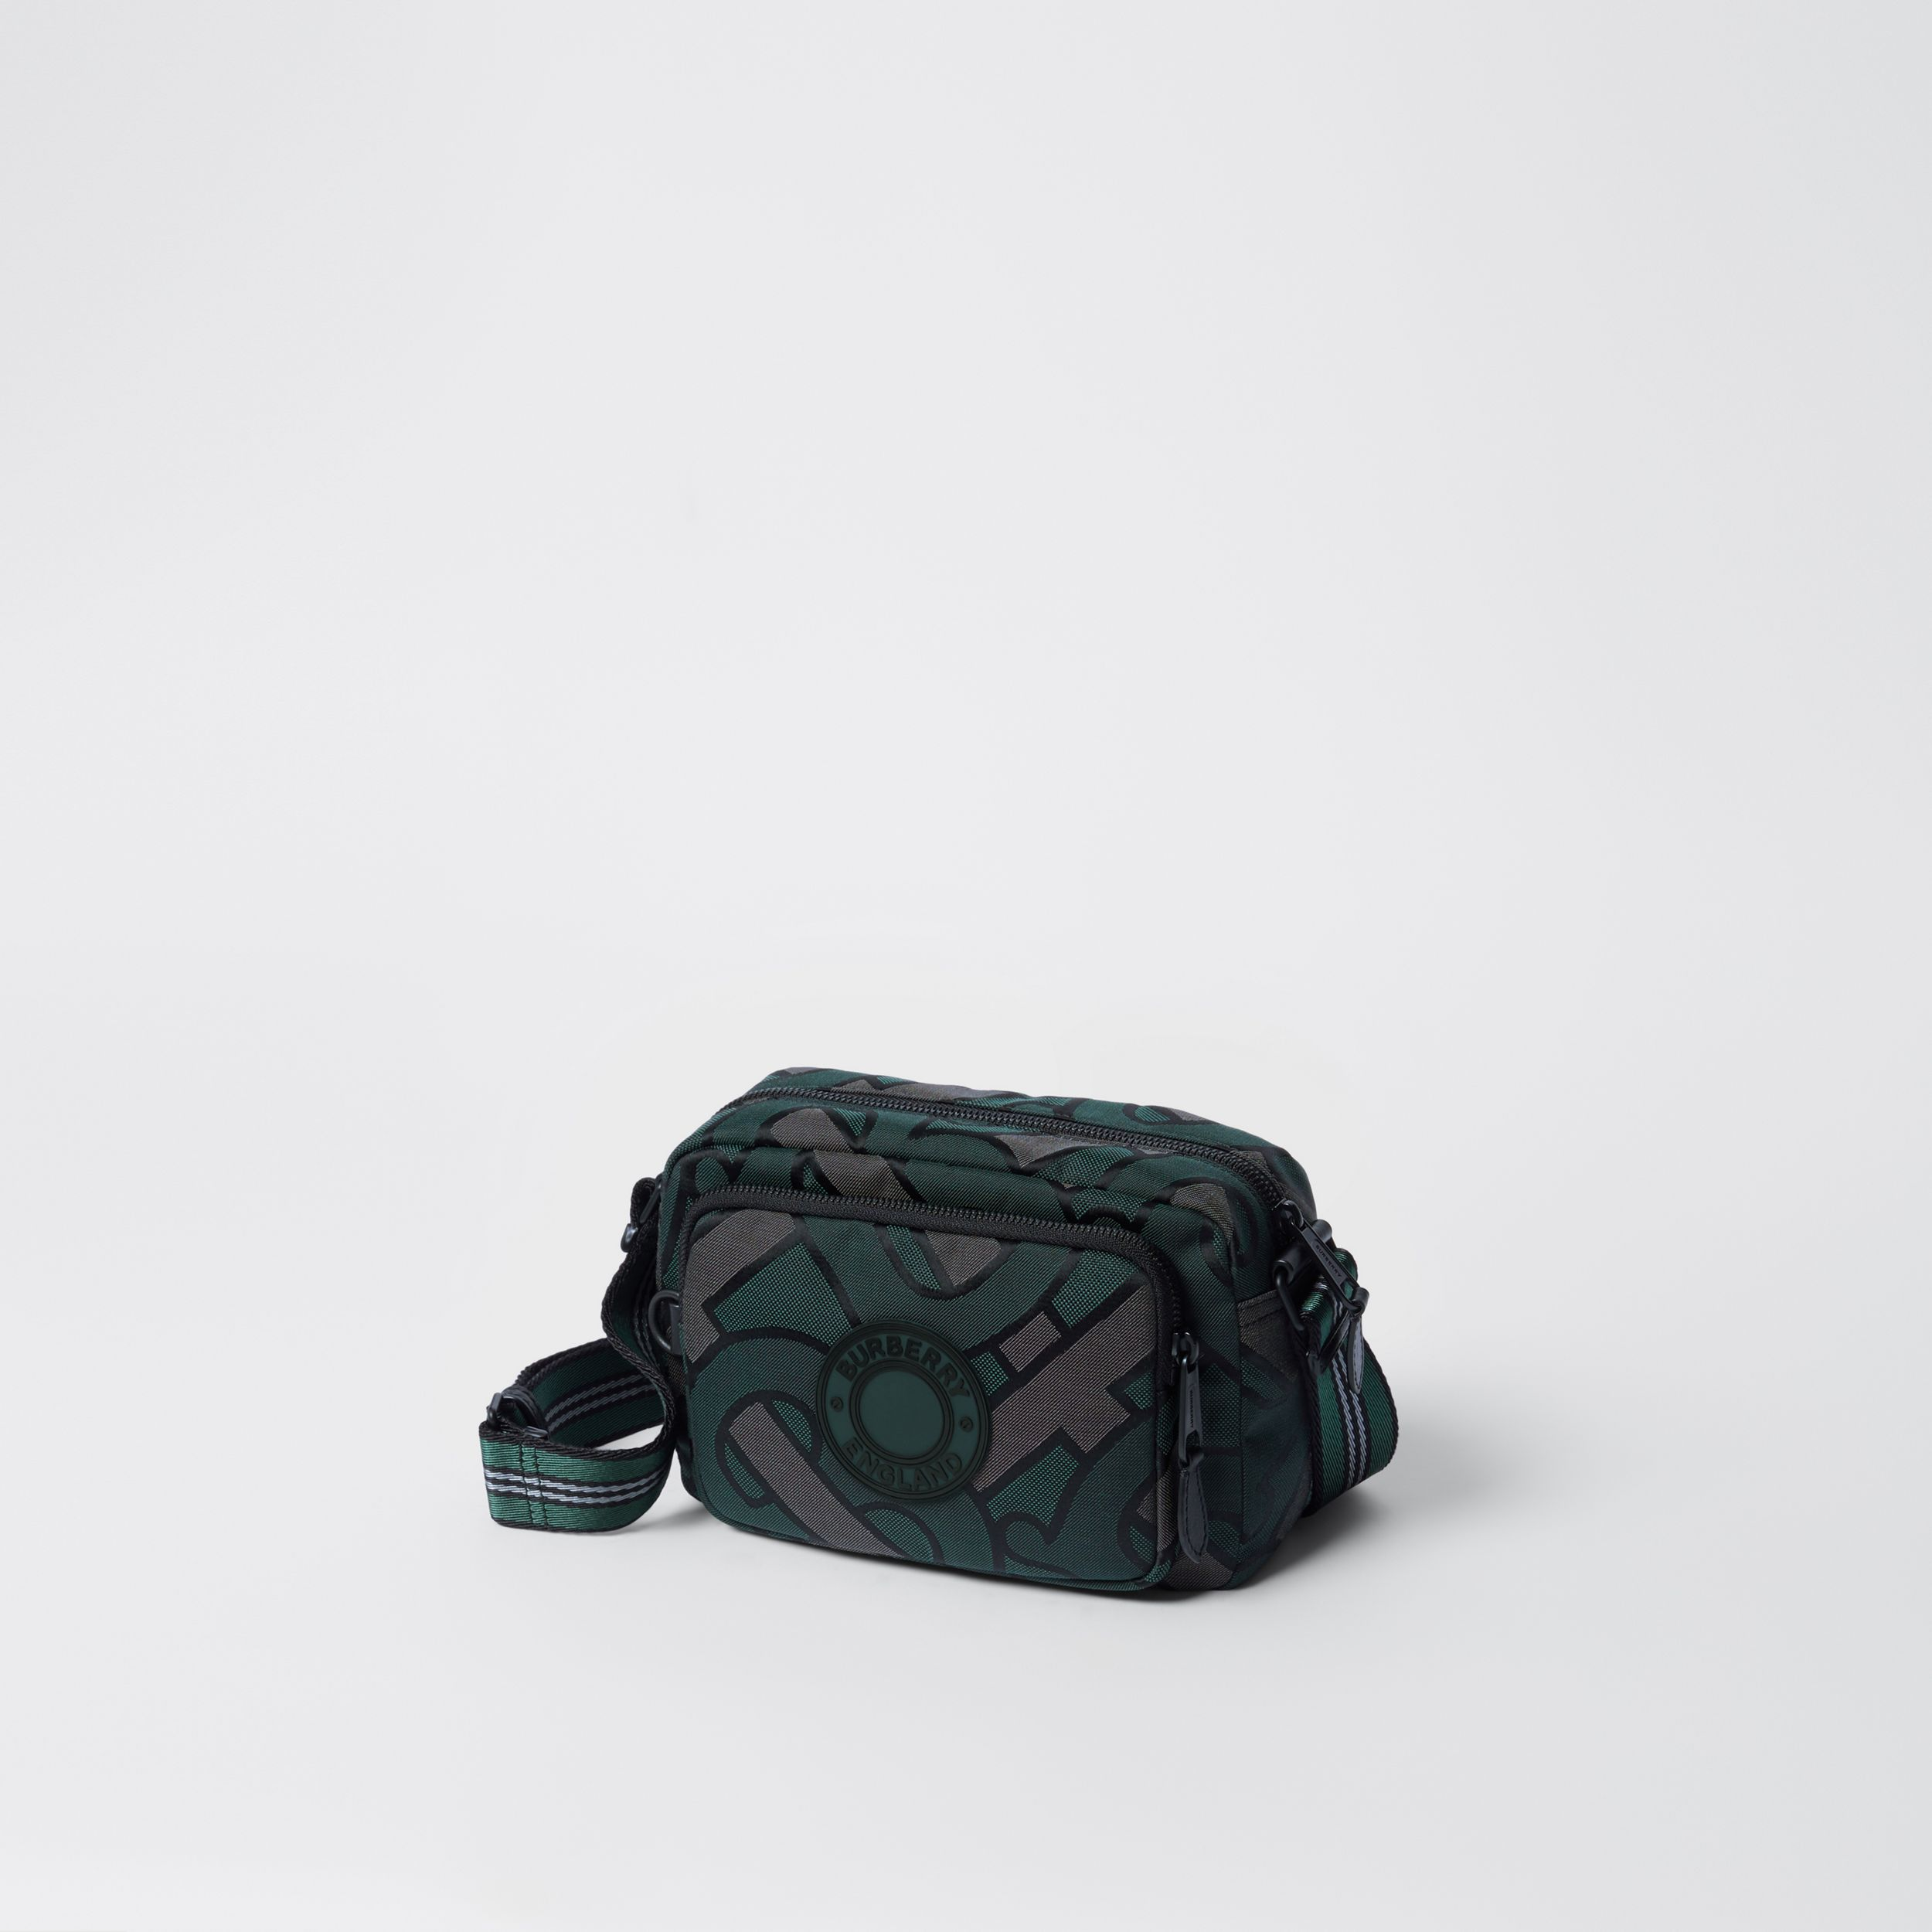 Monogram Recycled Polyester Crossbody Bag in Forest Green - Men | Burberry - 4